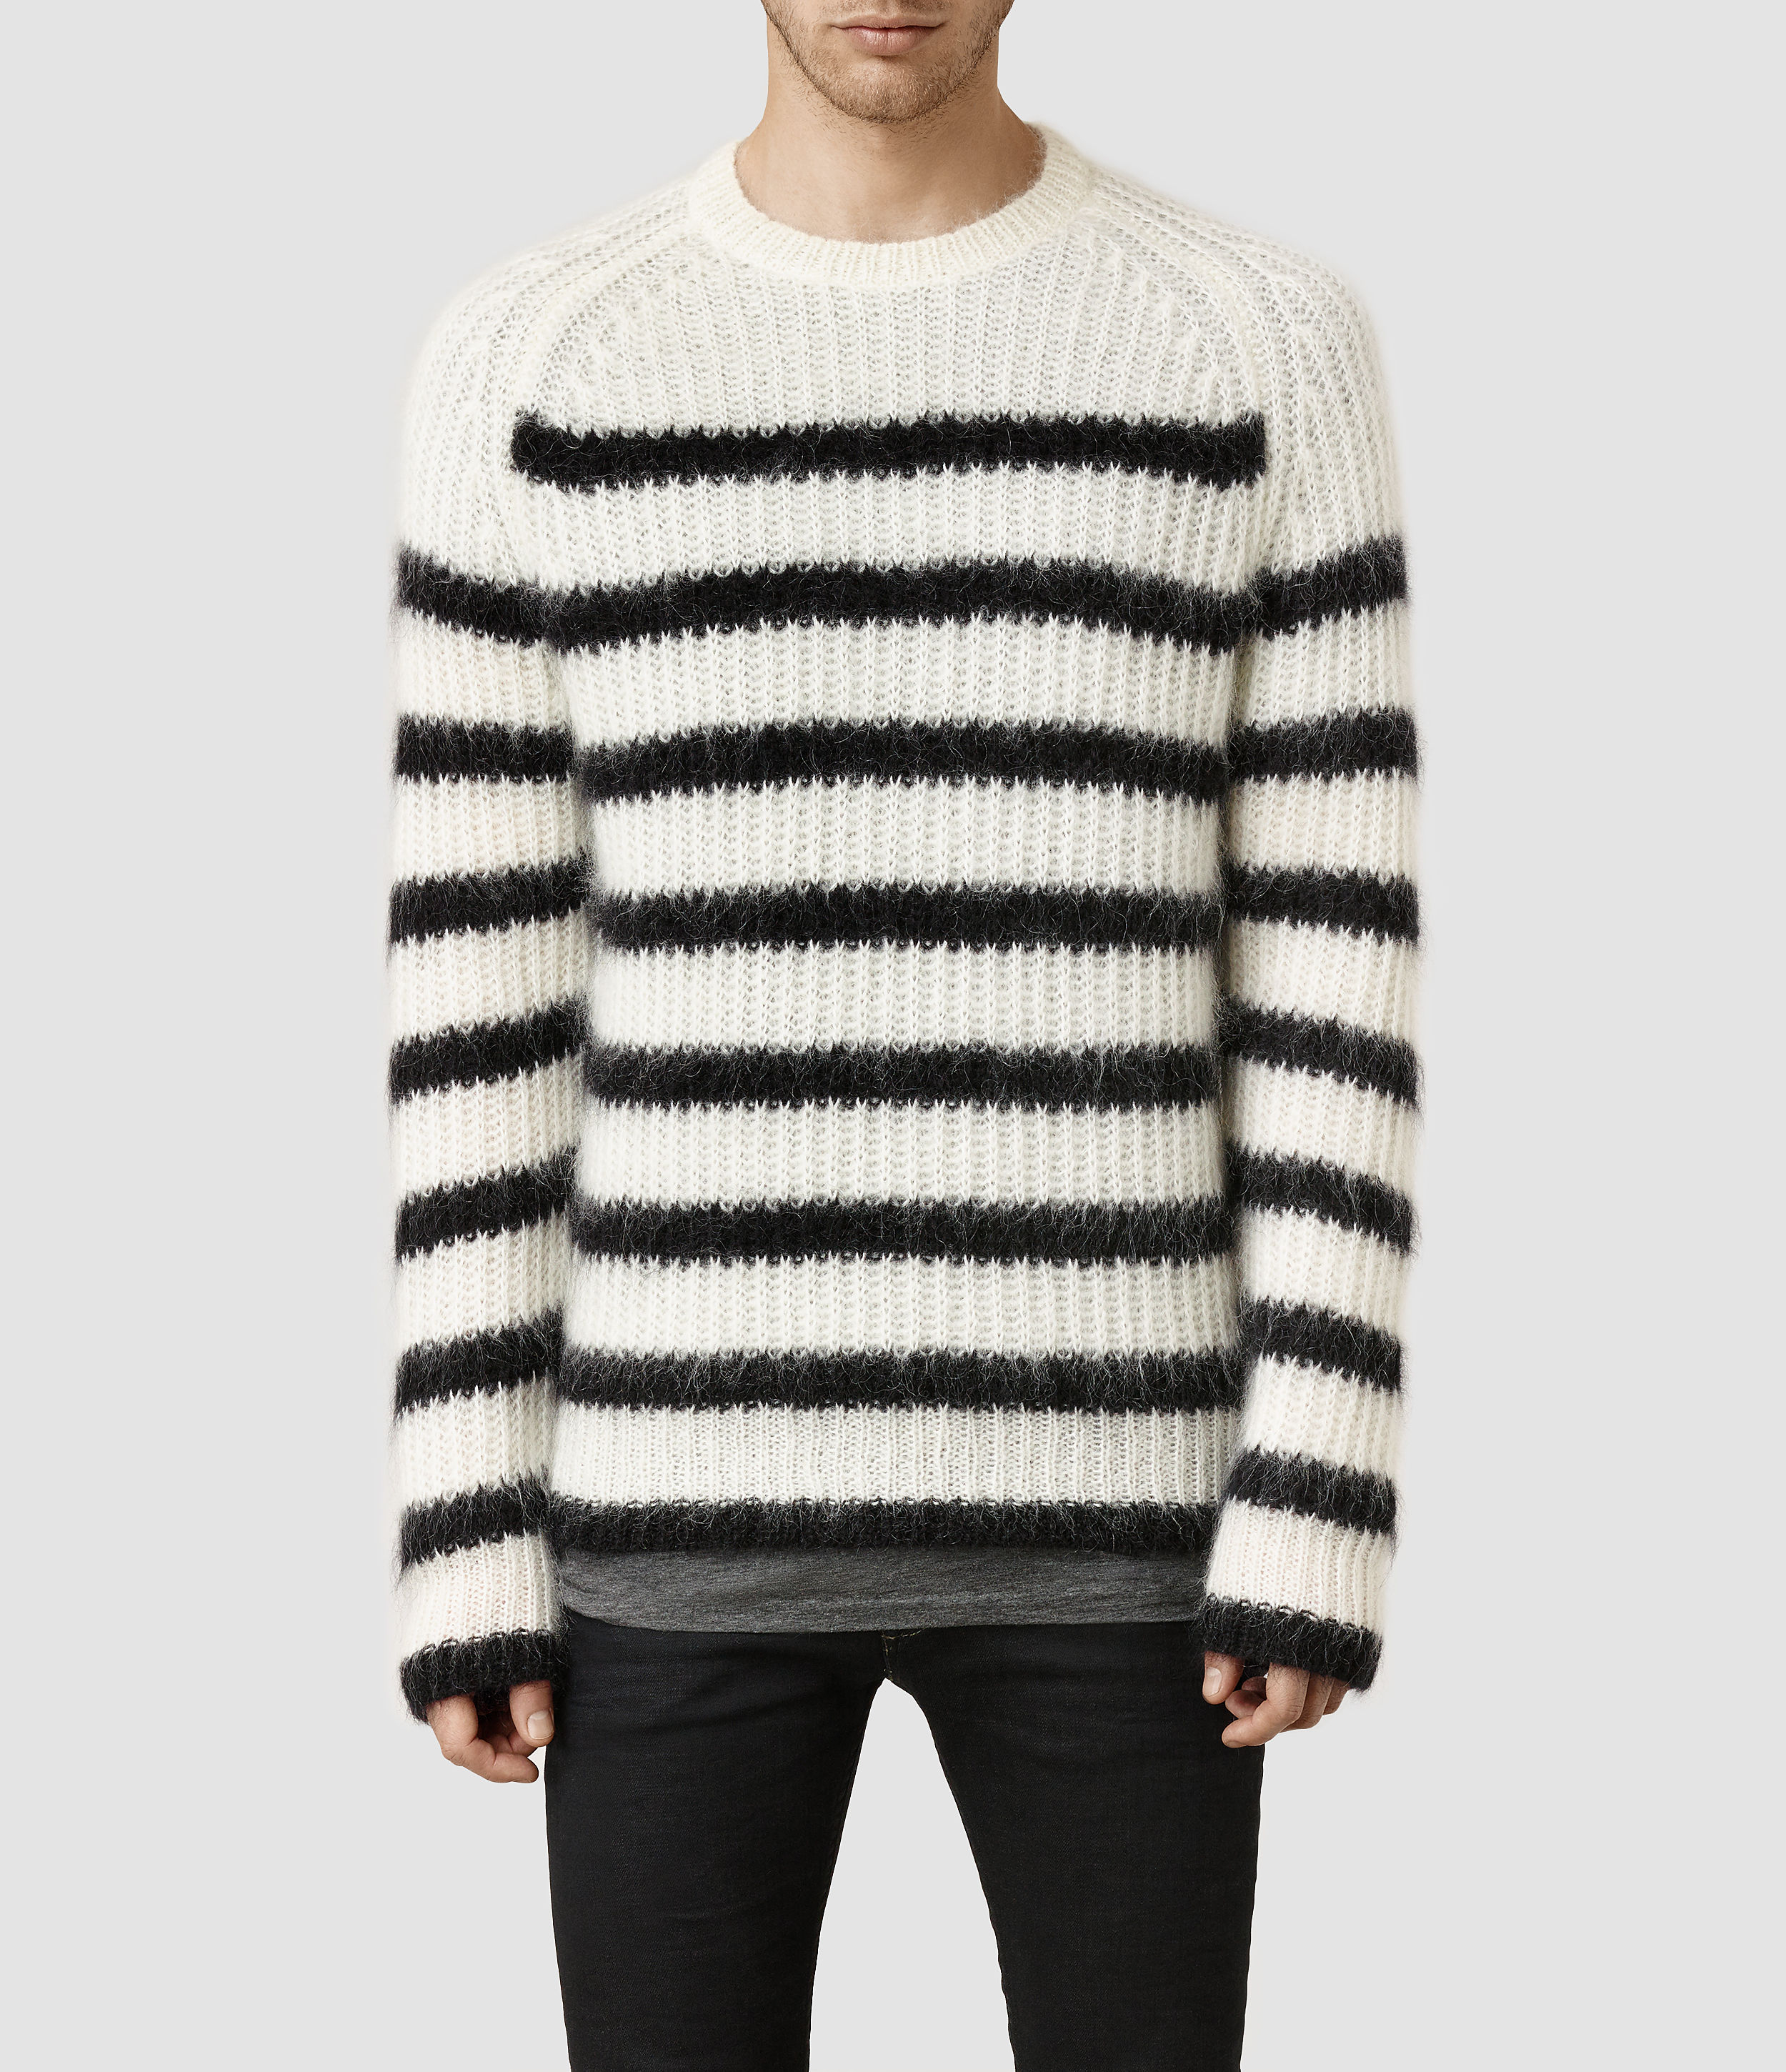 2519a0325 Lyst - AllSaints Breton Crew Sweater in Black for Men